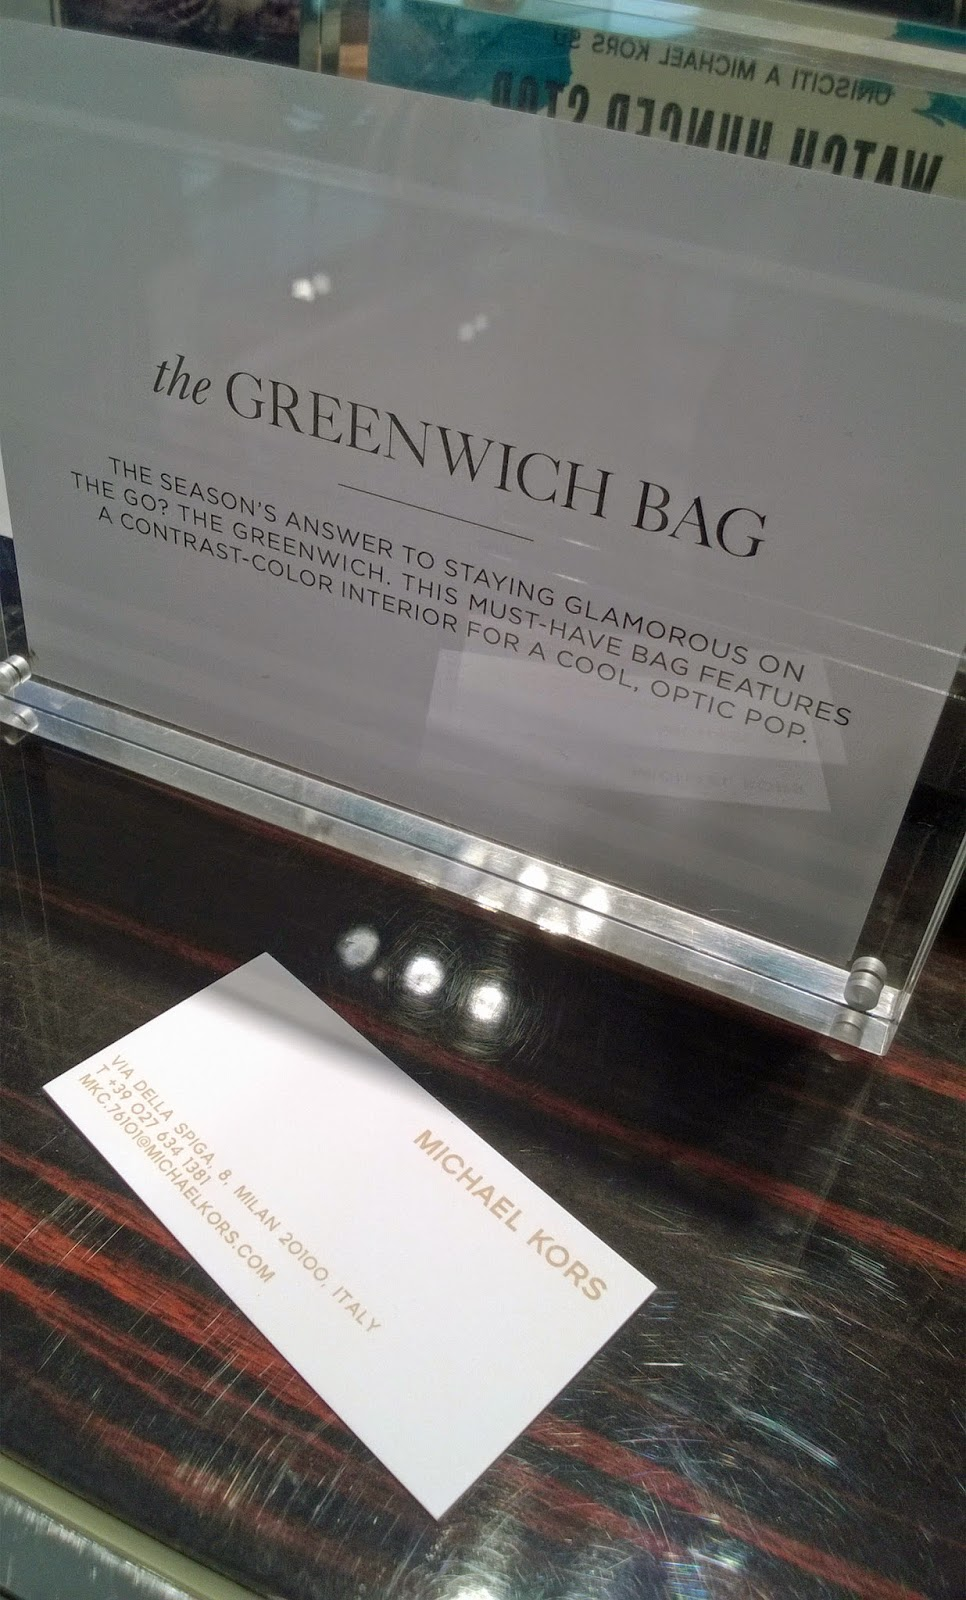 Eniwhere Fashion - Greenwich - Michael Kors - Bag - Must have